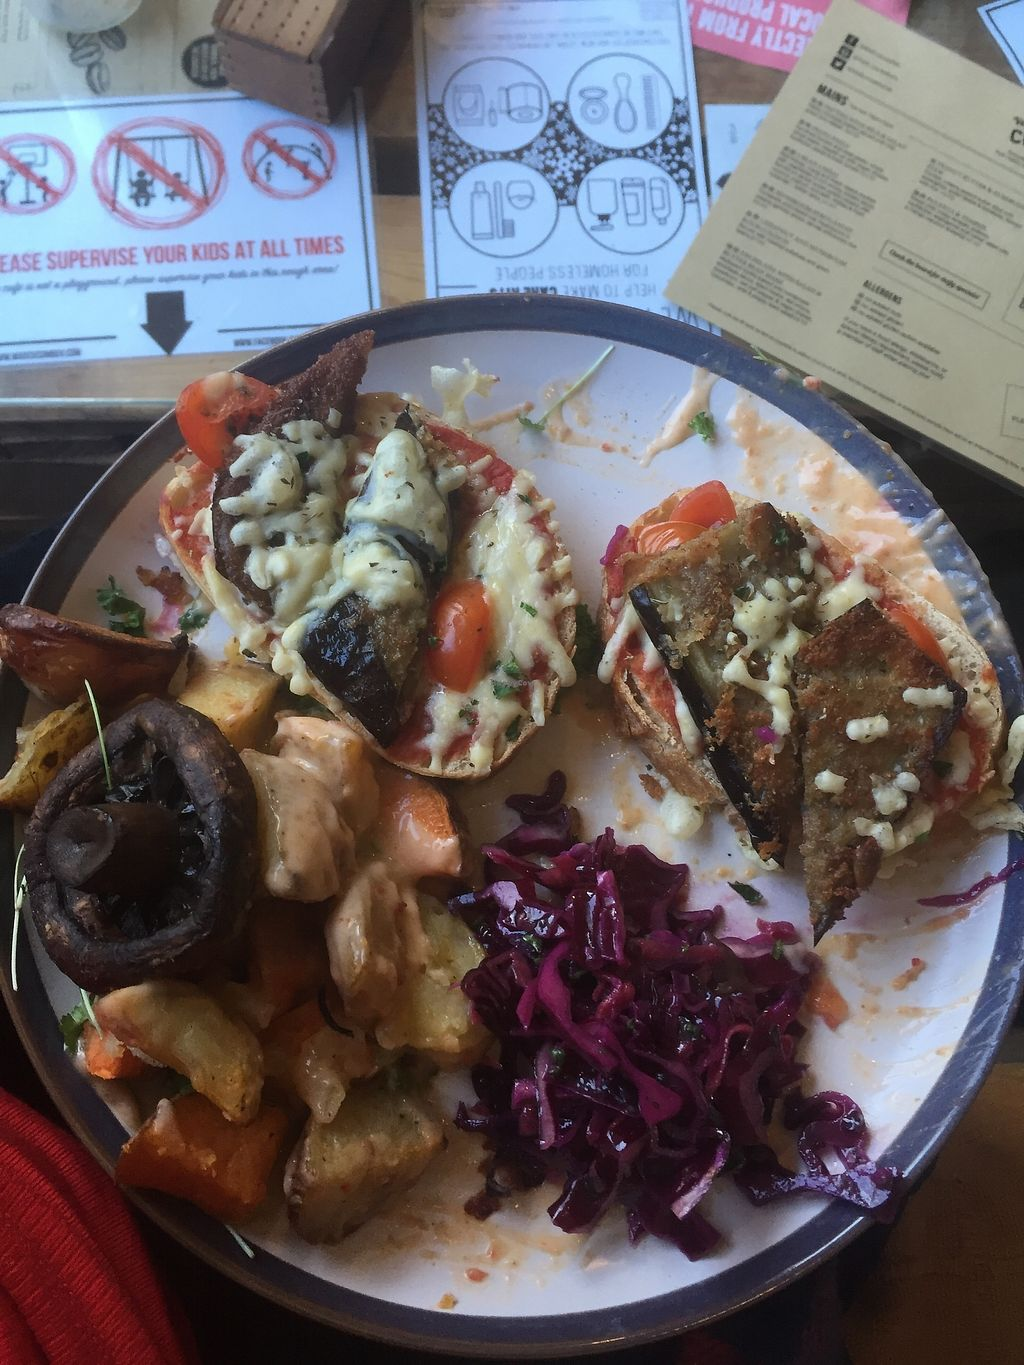 """Photo of Mad Cucumber - Vegan Lounge  by <a href=""""/members/profile/small_trees"""">small_trees</a> <br/>Breaded aubergine and cheese toasty <br/> January 29, 2018  - <a href='/contact/abuse/image/39613/352162'>Report</a>"""